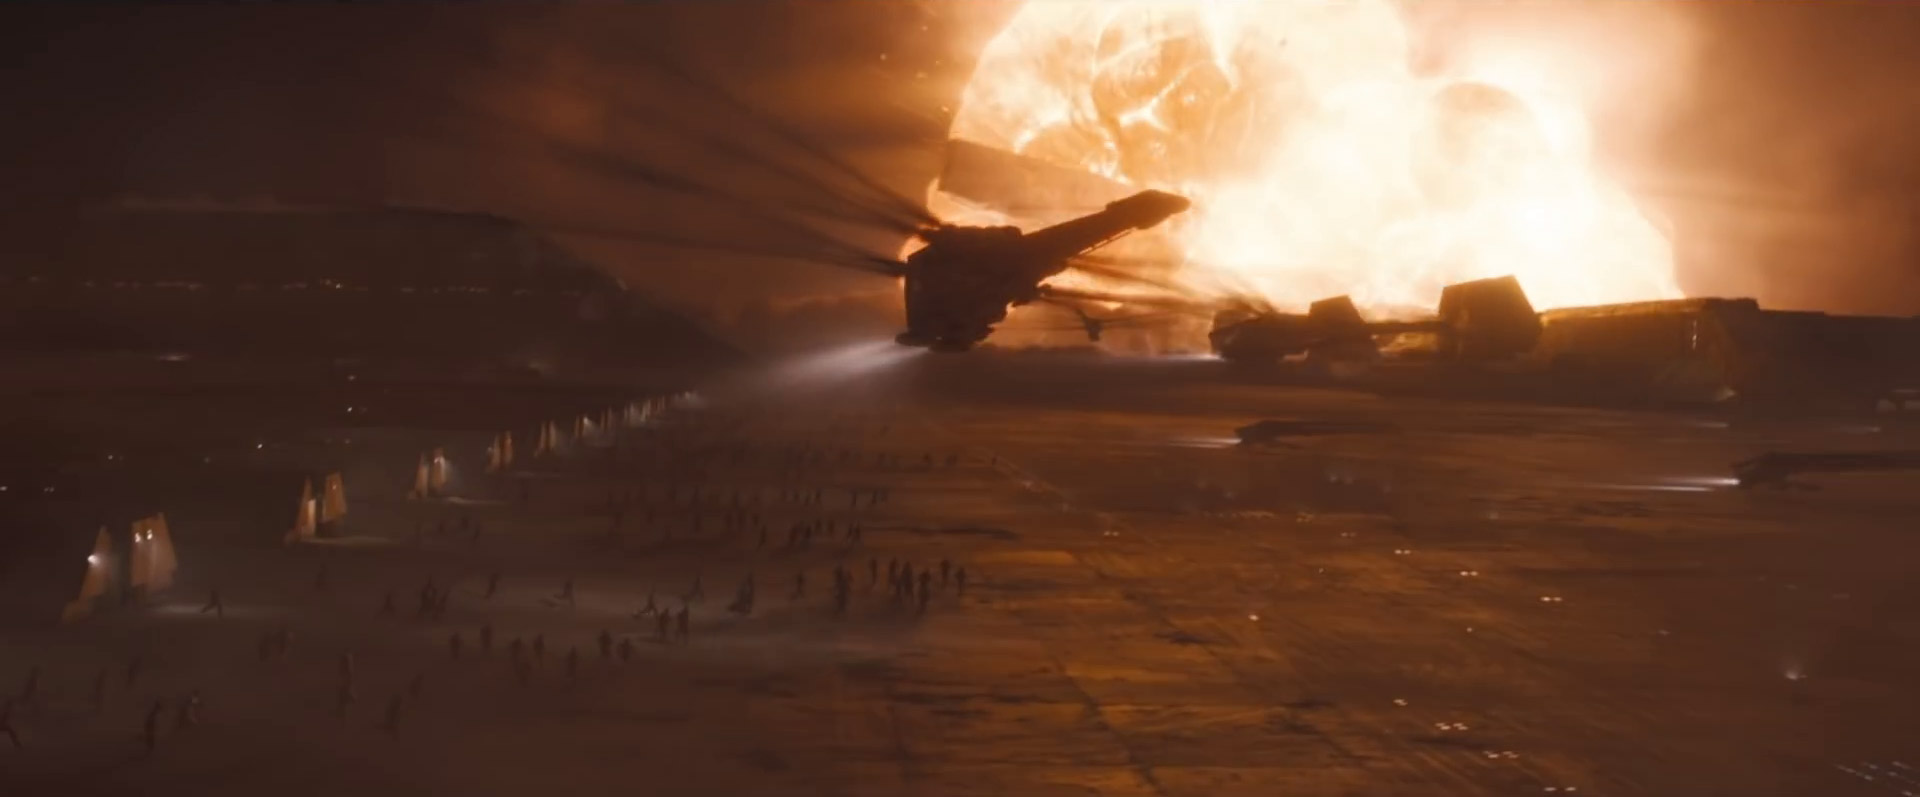 Super Epic First Trailer for Dune (2020)